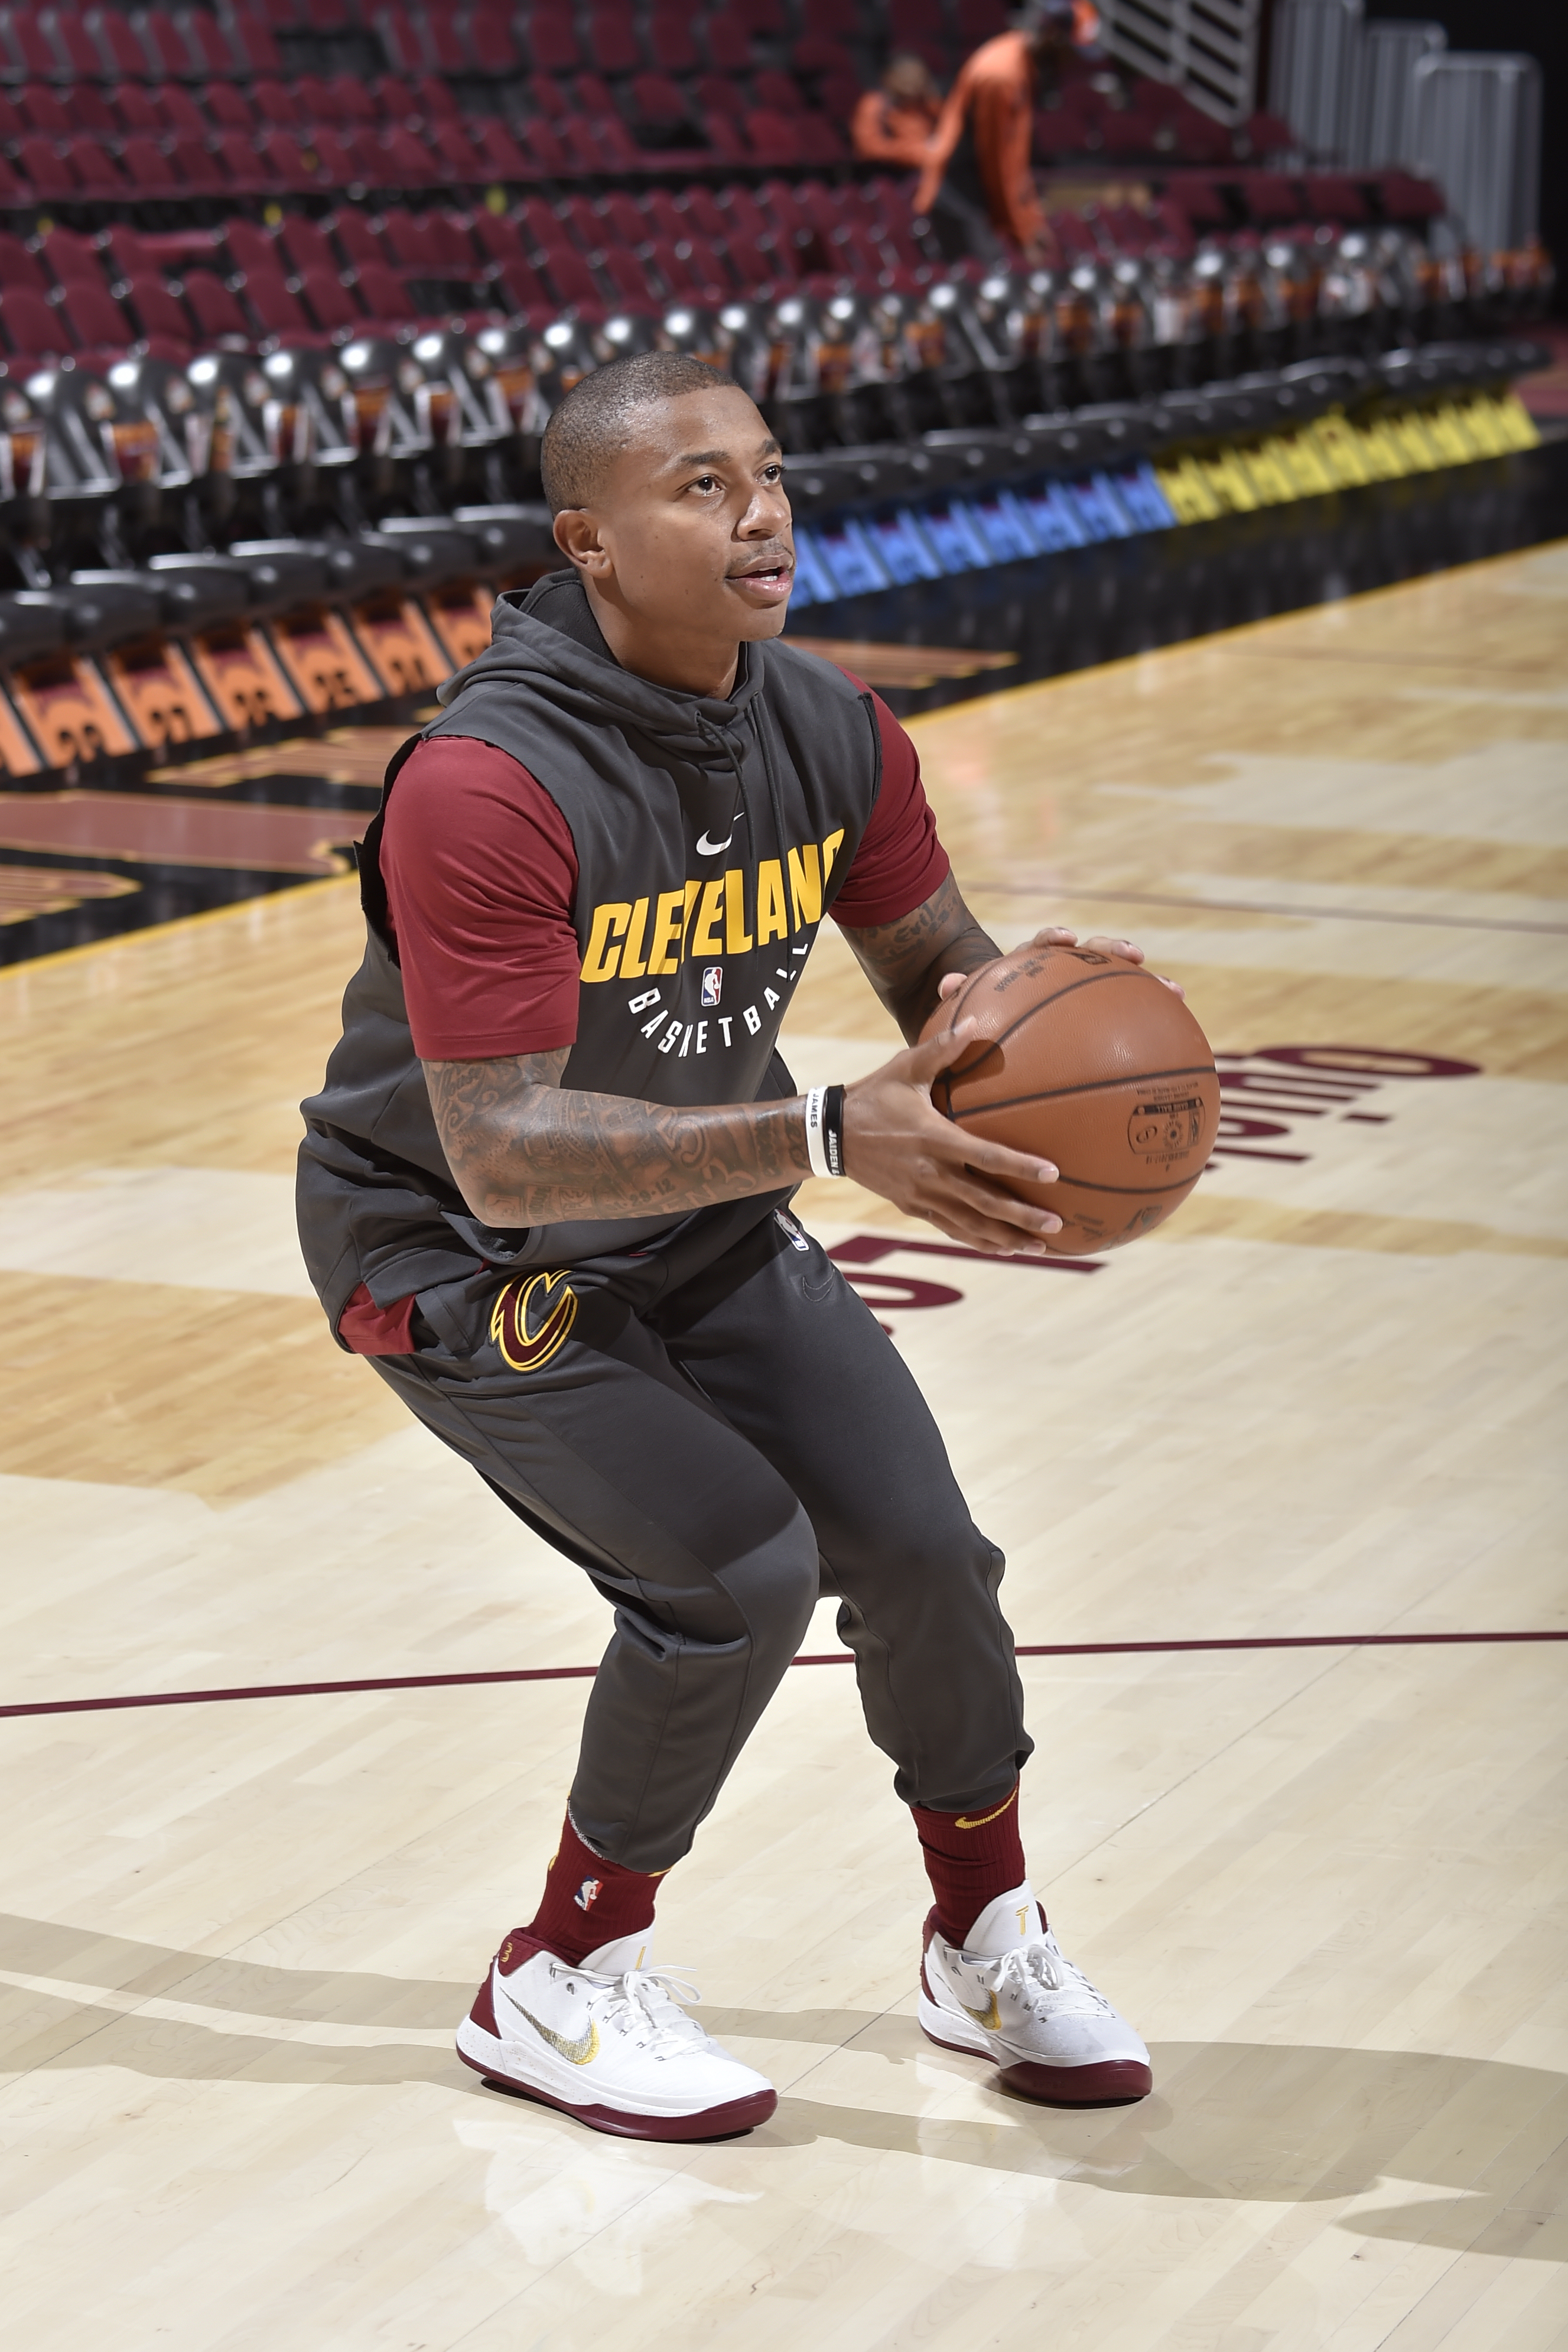 841c7fa96 Isaiah Thomas says Cleveland Cavaliers haven t rushed him to come back